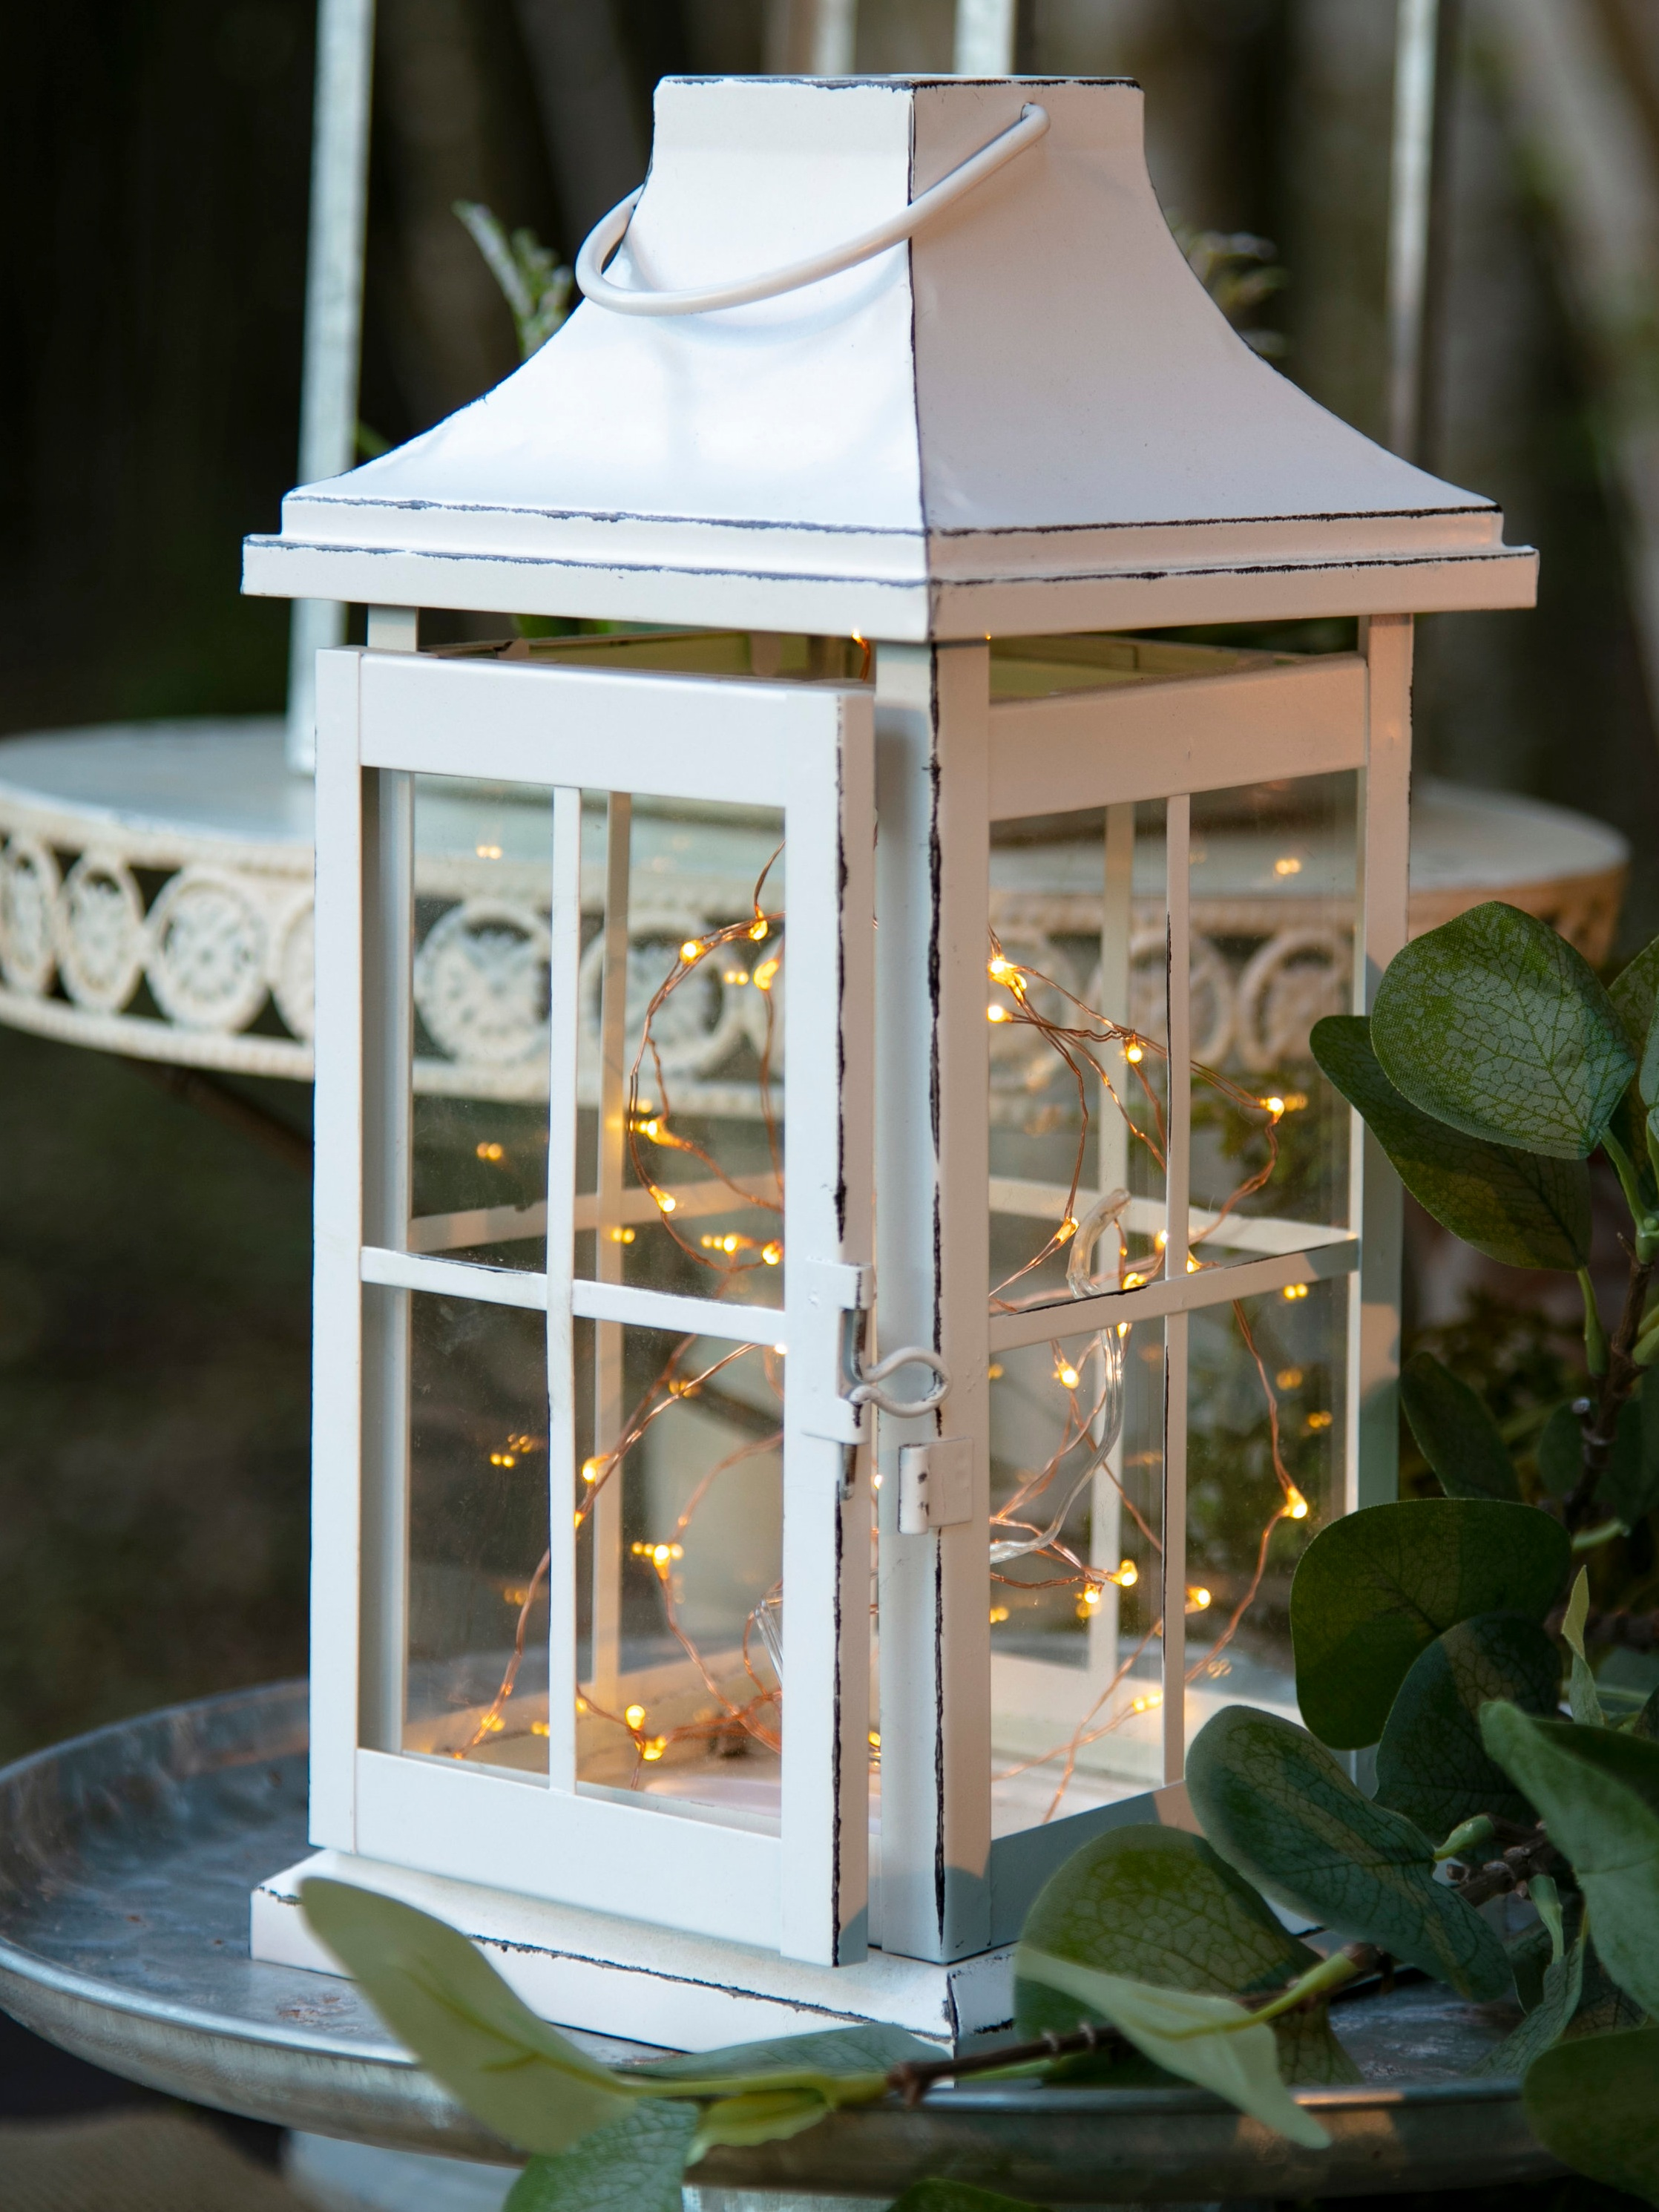 Fairy Lights  Length: 10'  Qty: 16  Fairy Lights  Length 20'  Qty:4  Rental Cost: $5.00 for 5 / $15.00 for all